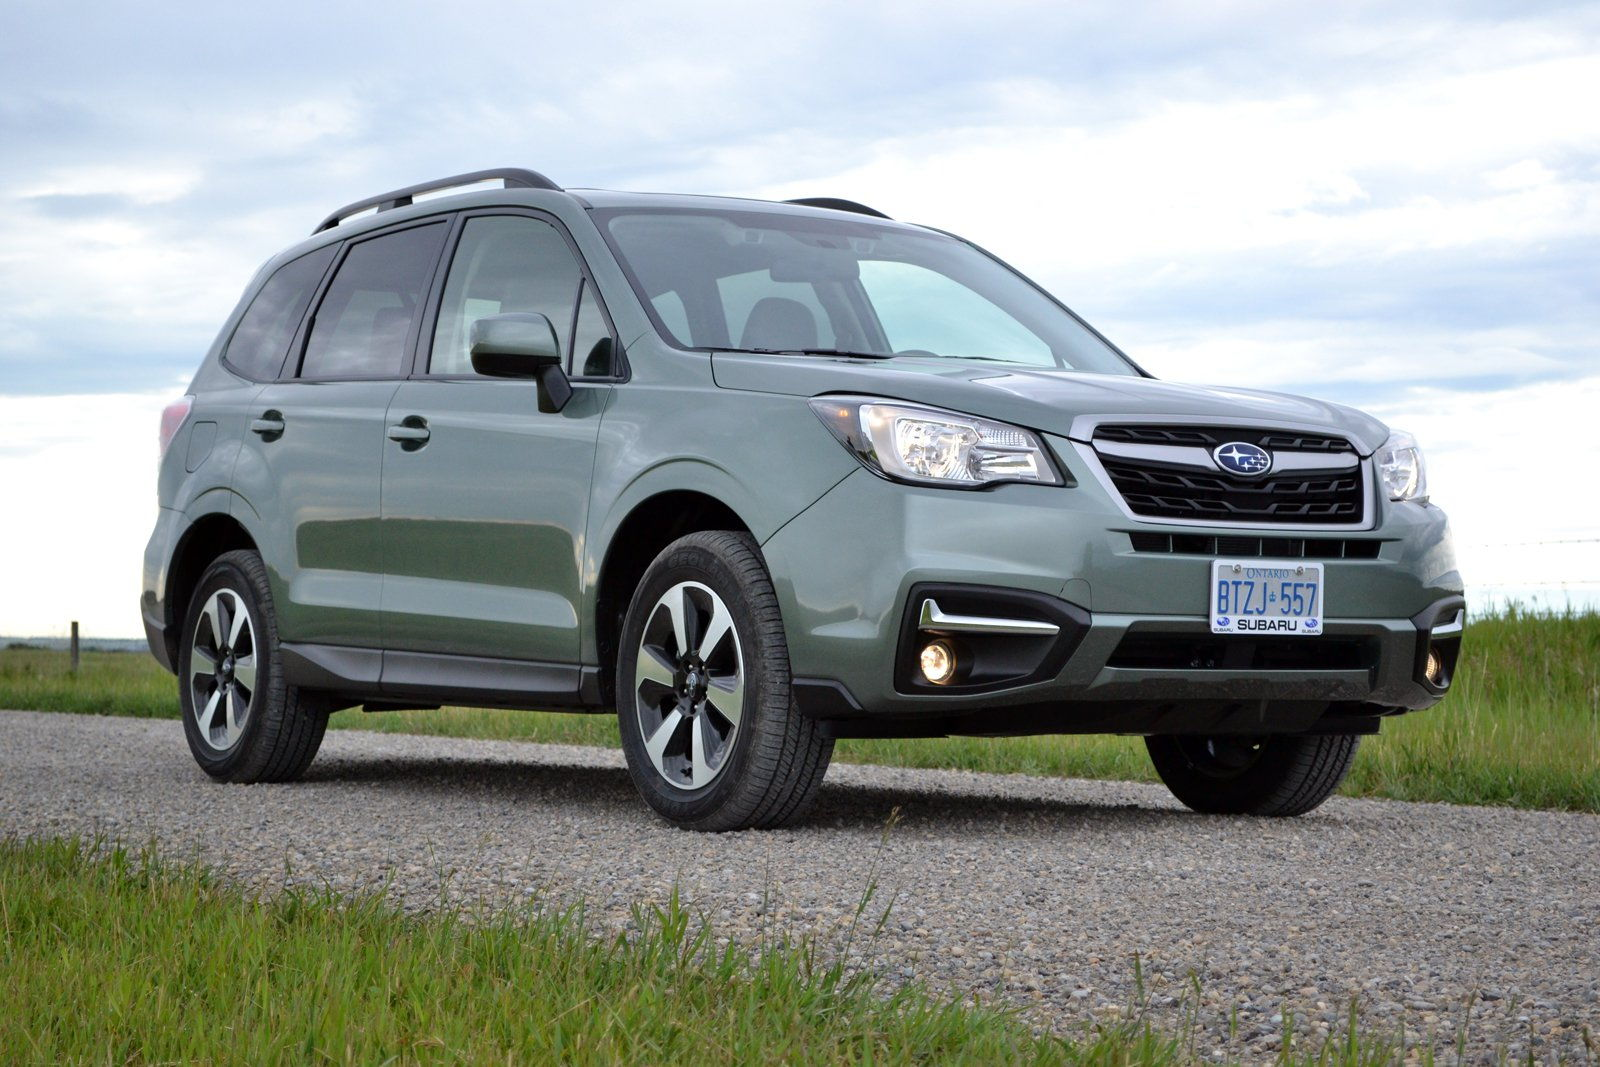 MM Full-Review: 2017 Subaru Forester - ClubLexus - Lexus ...